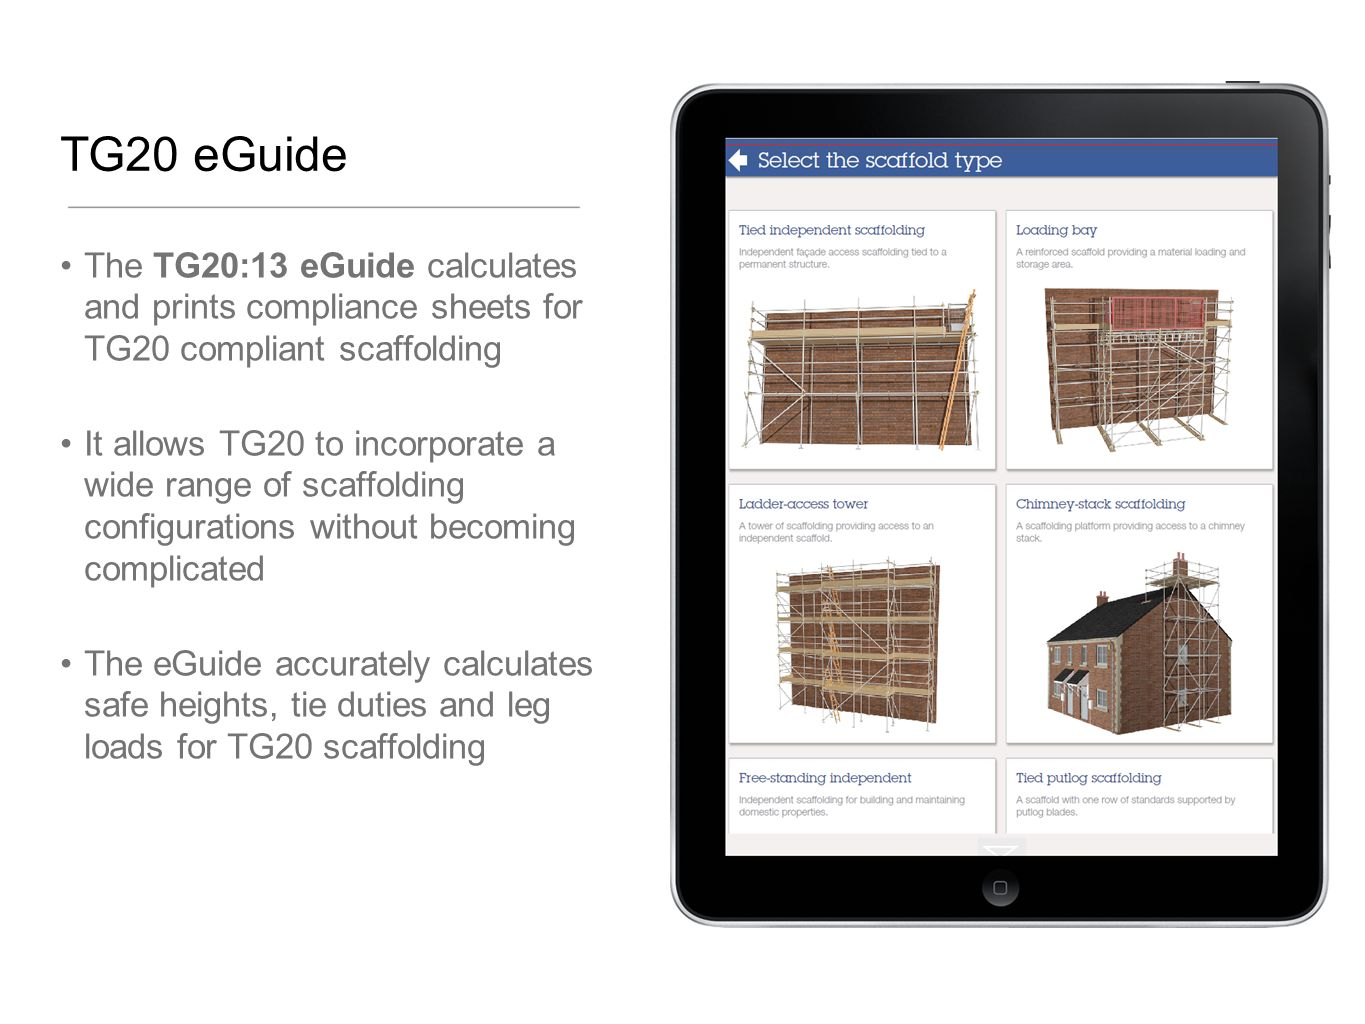 TG20 eGuide The TG20:13 eGuide calculates and prints compliance sheets for TG20 compliant scaffolding.